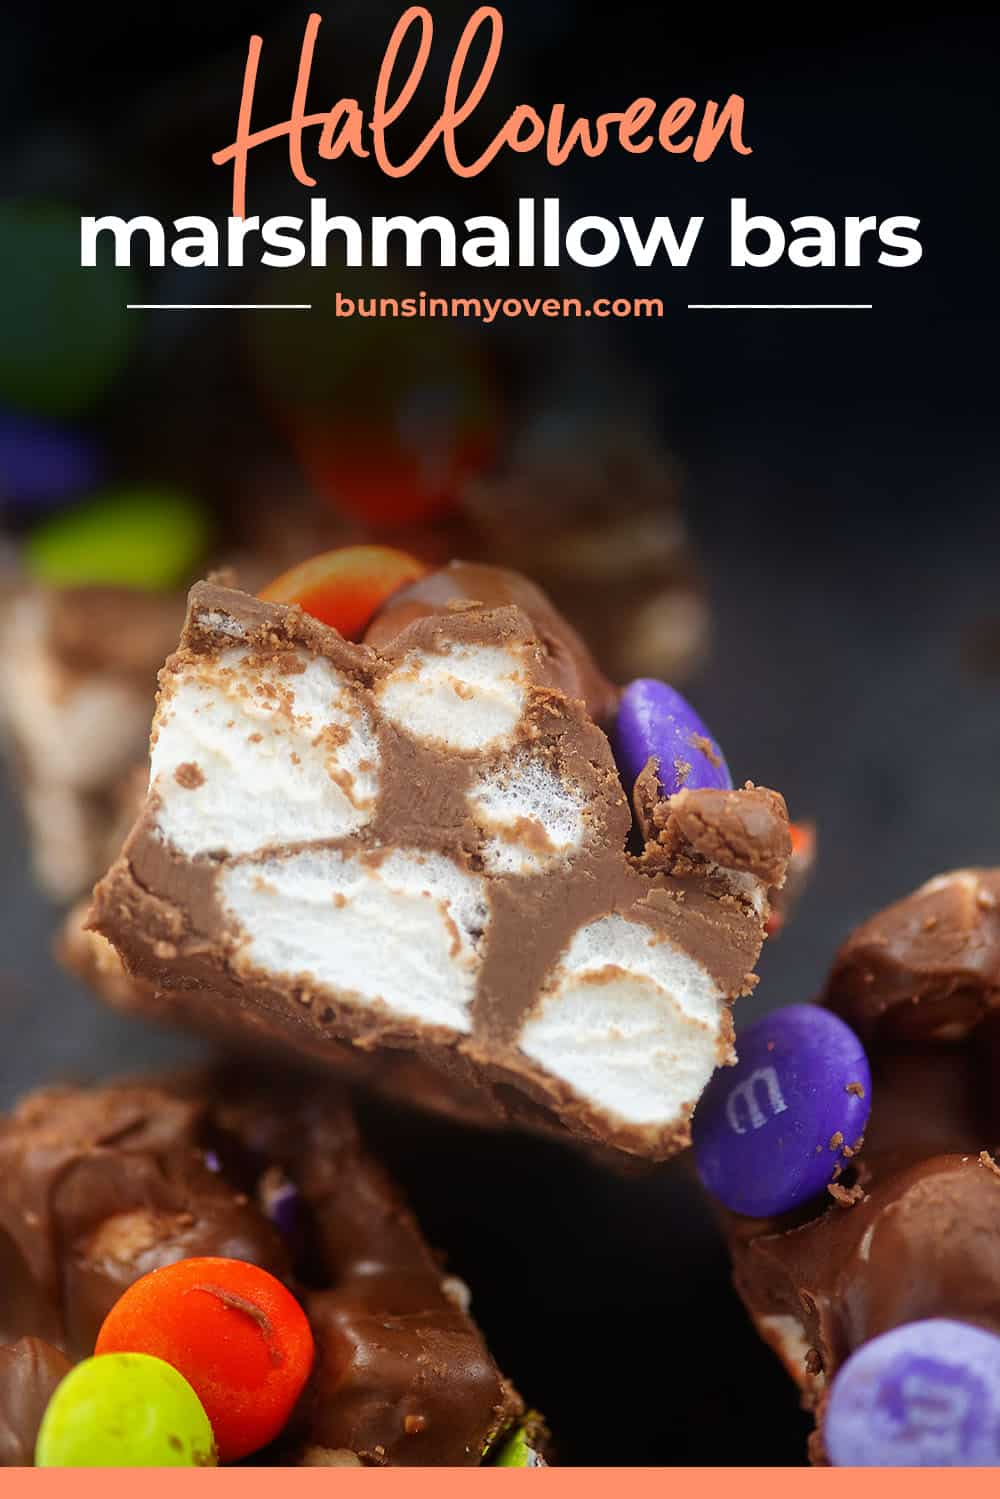 Halloween marshmallow bars with text for Pinterest.